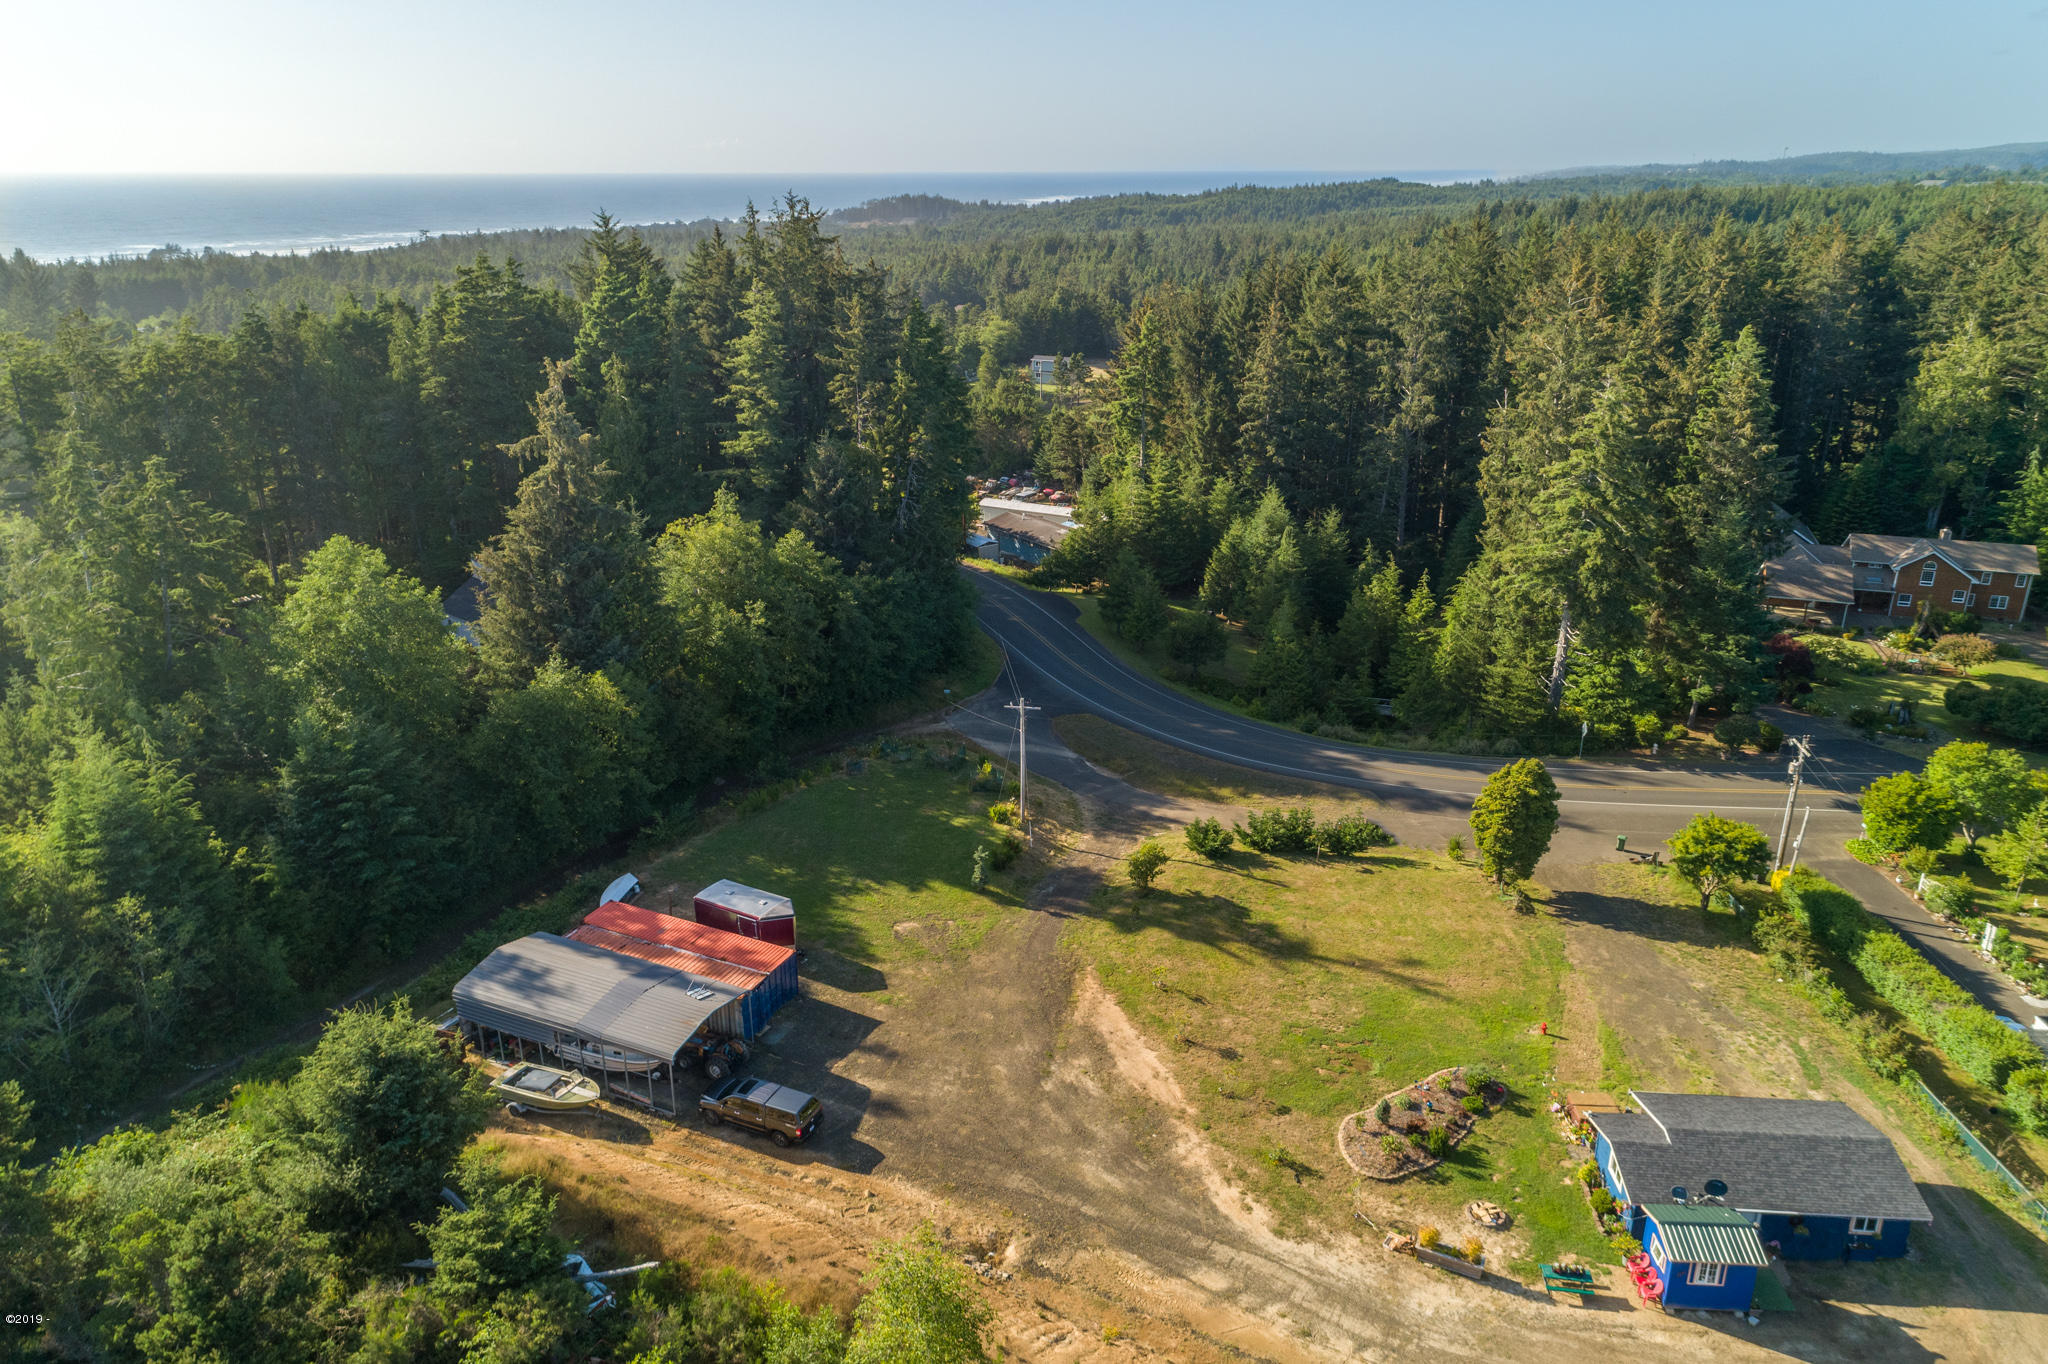 383 SW Wakonda Beach Rd, Waldport, OR 97394 - 383 SW Wakonda Beach Rd